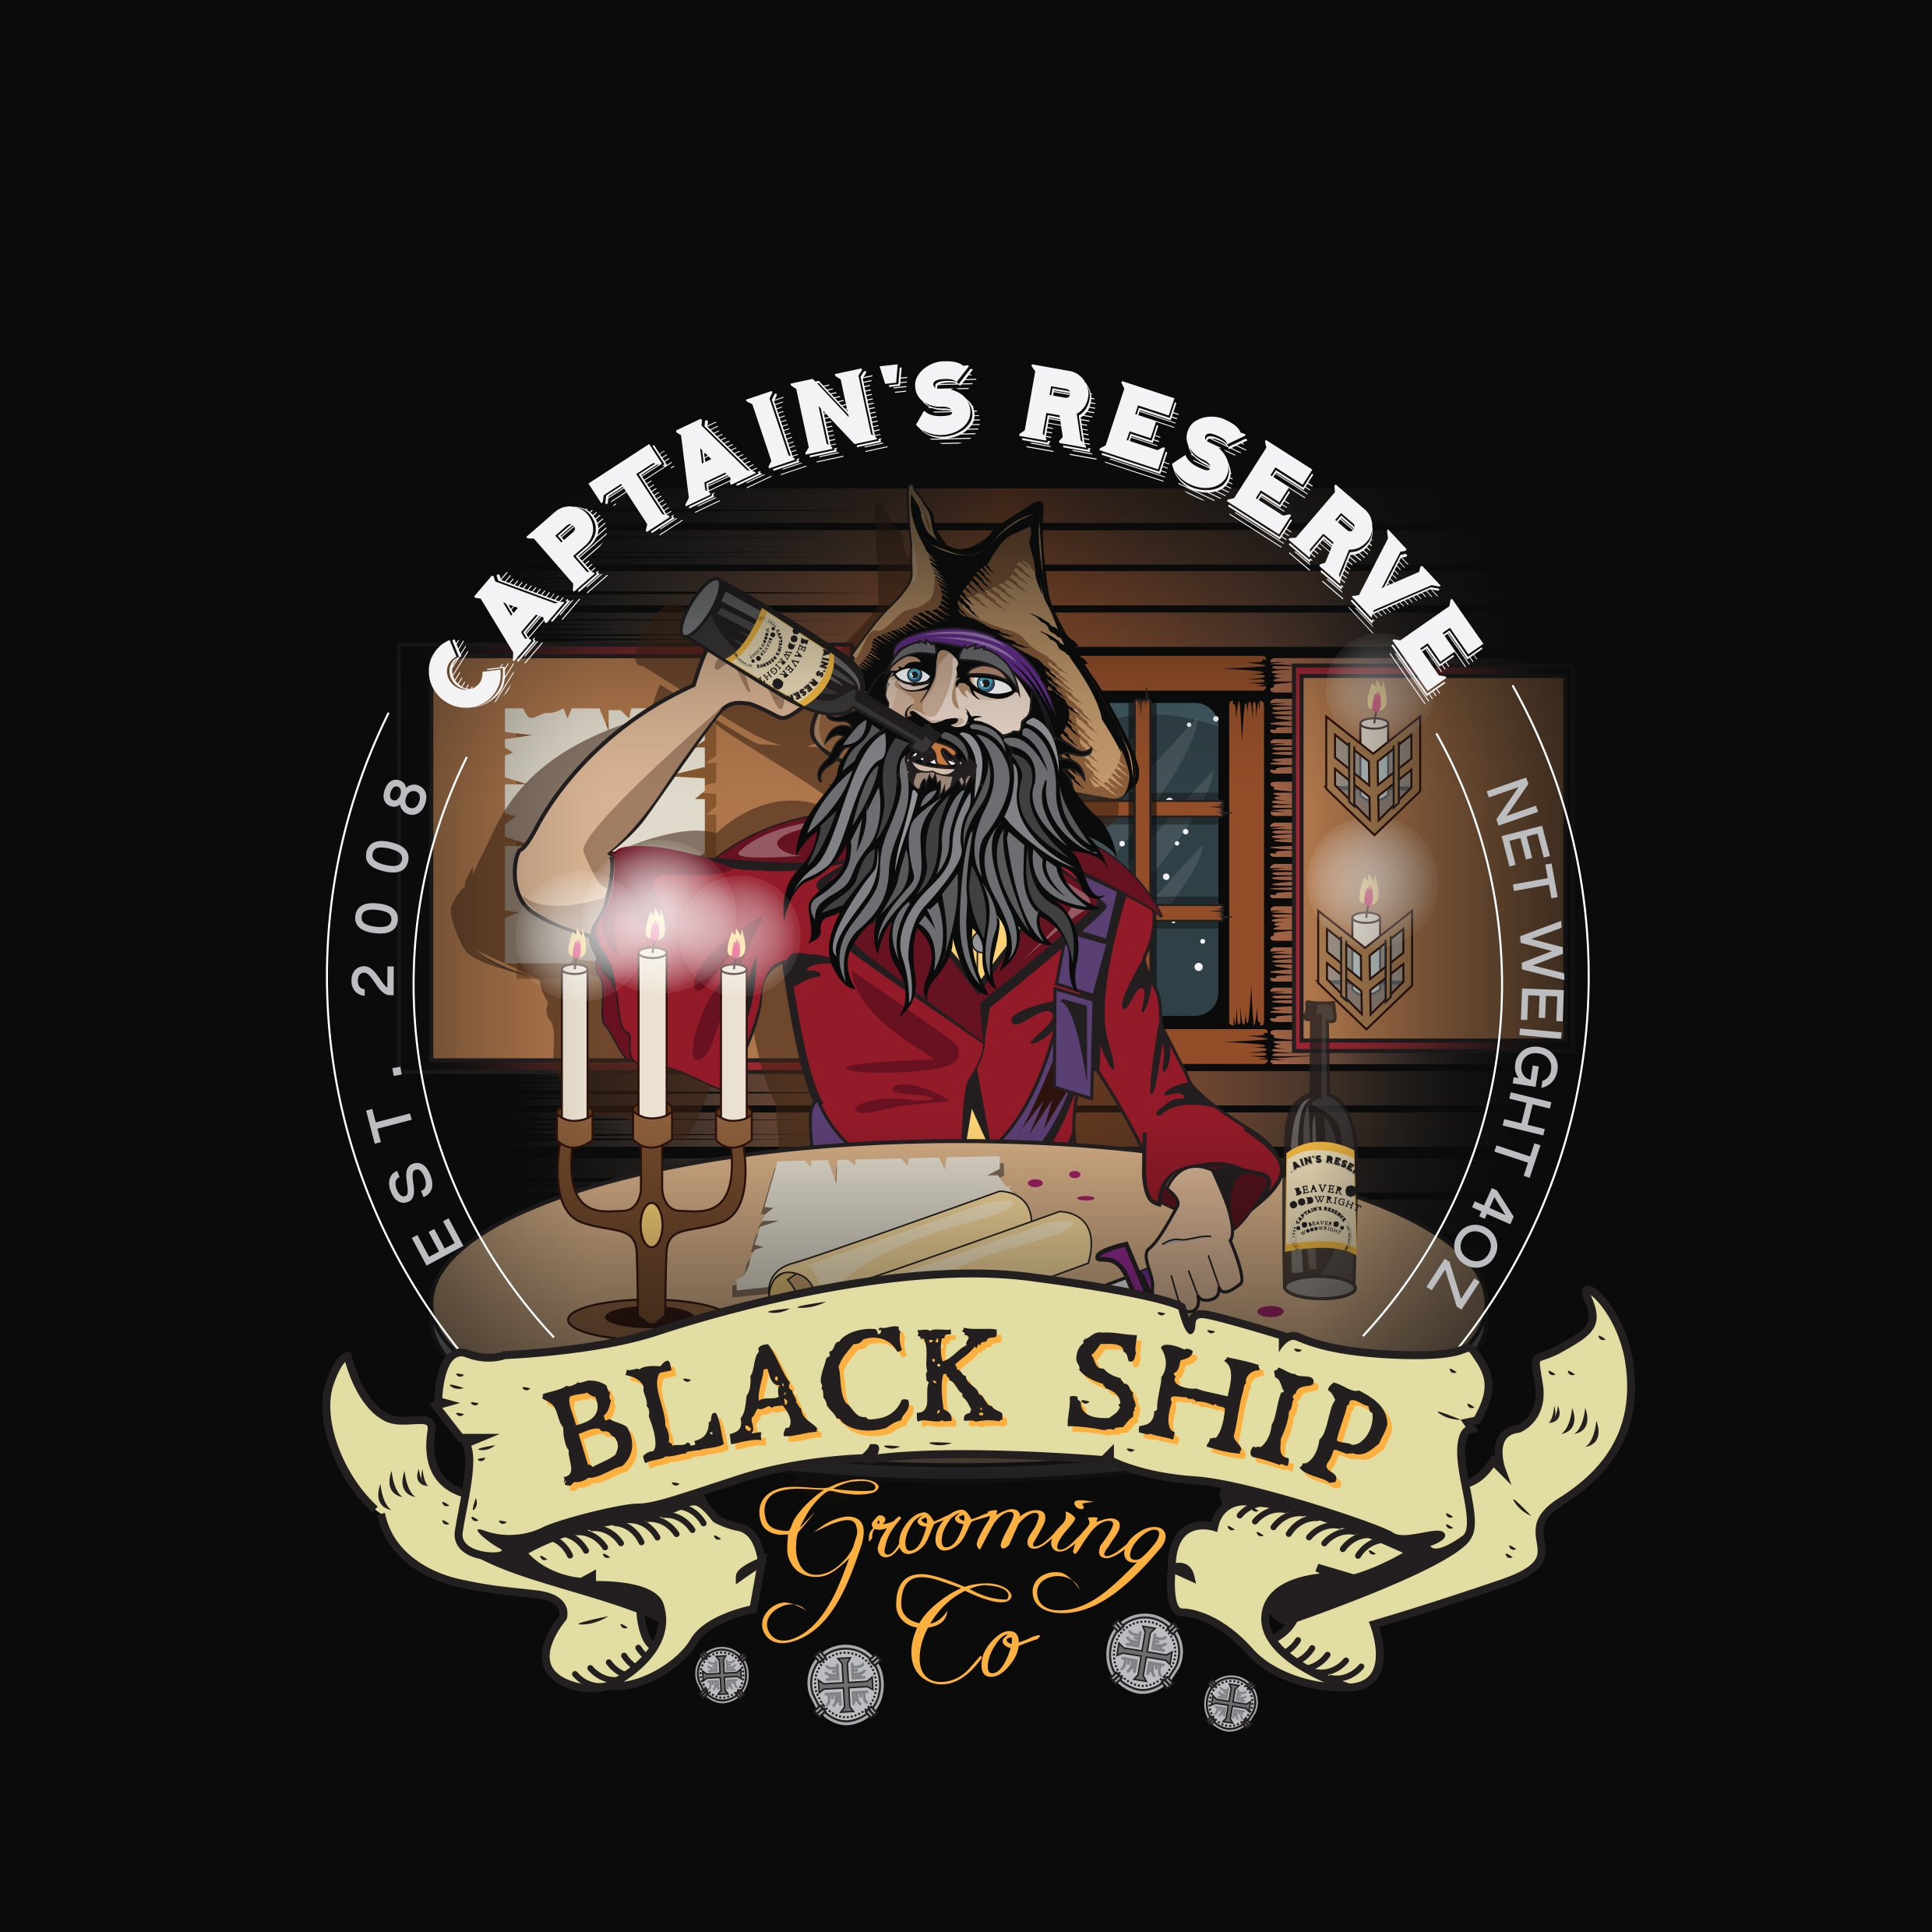 Black Ship Grooming - Captain's Reserve - Aftershave image